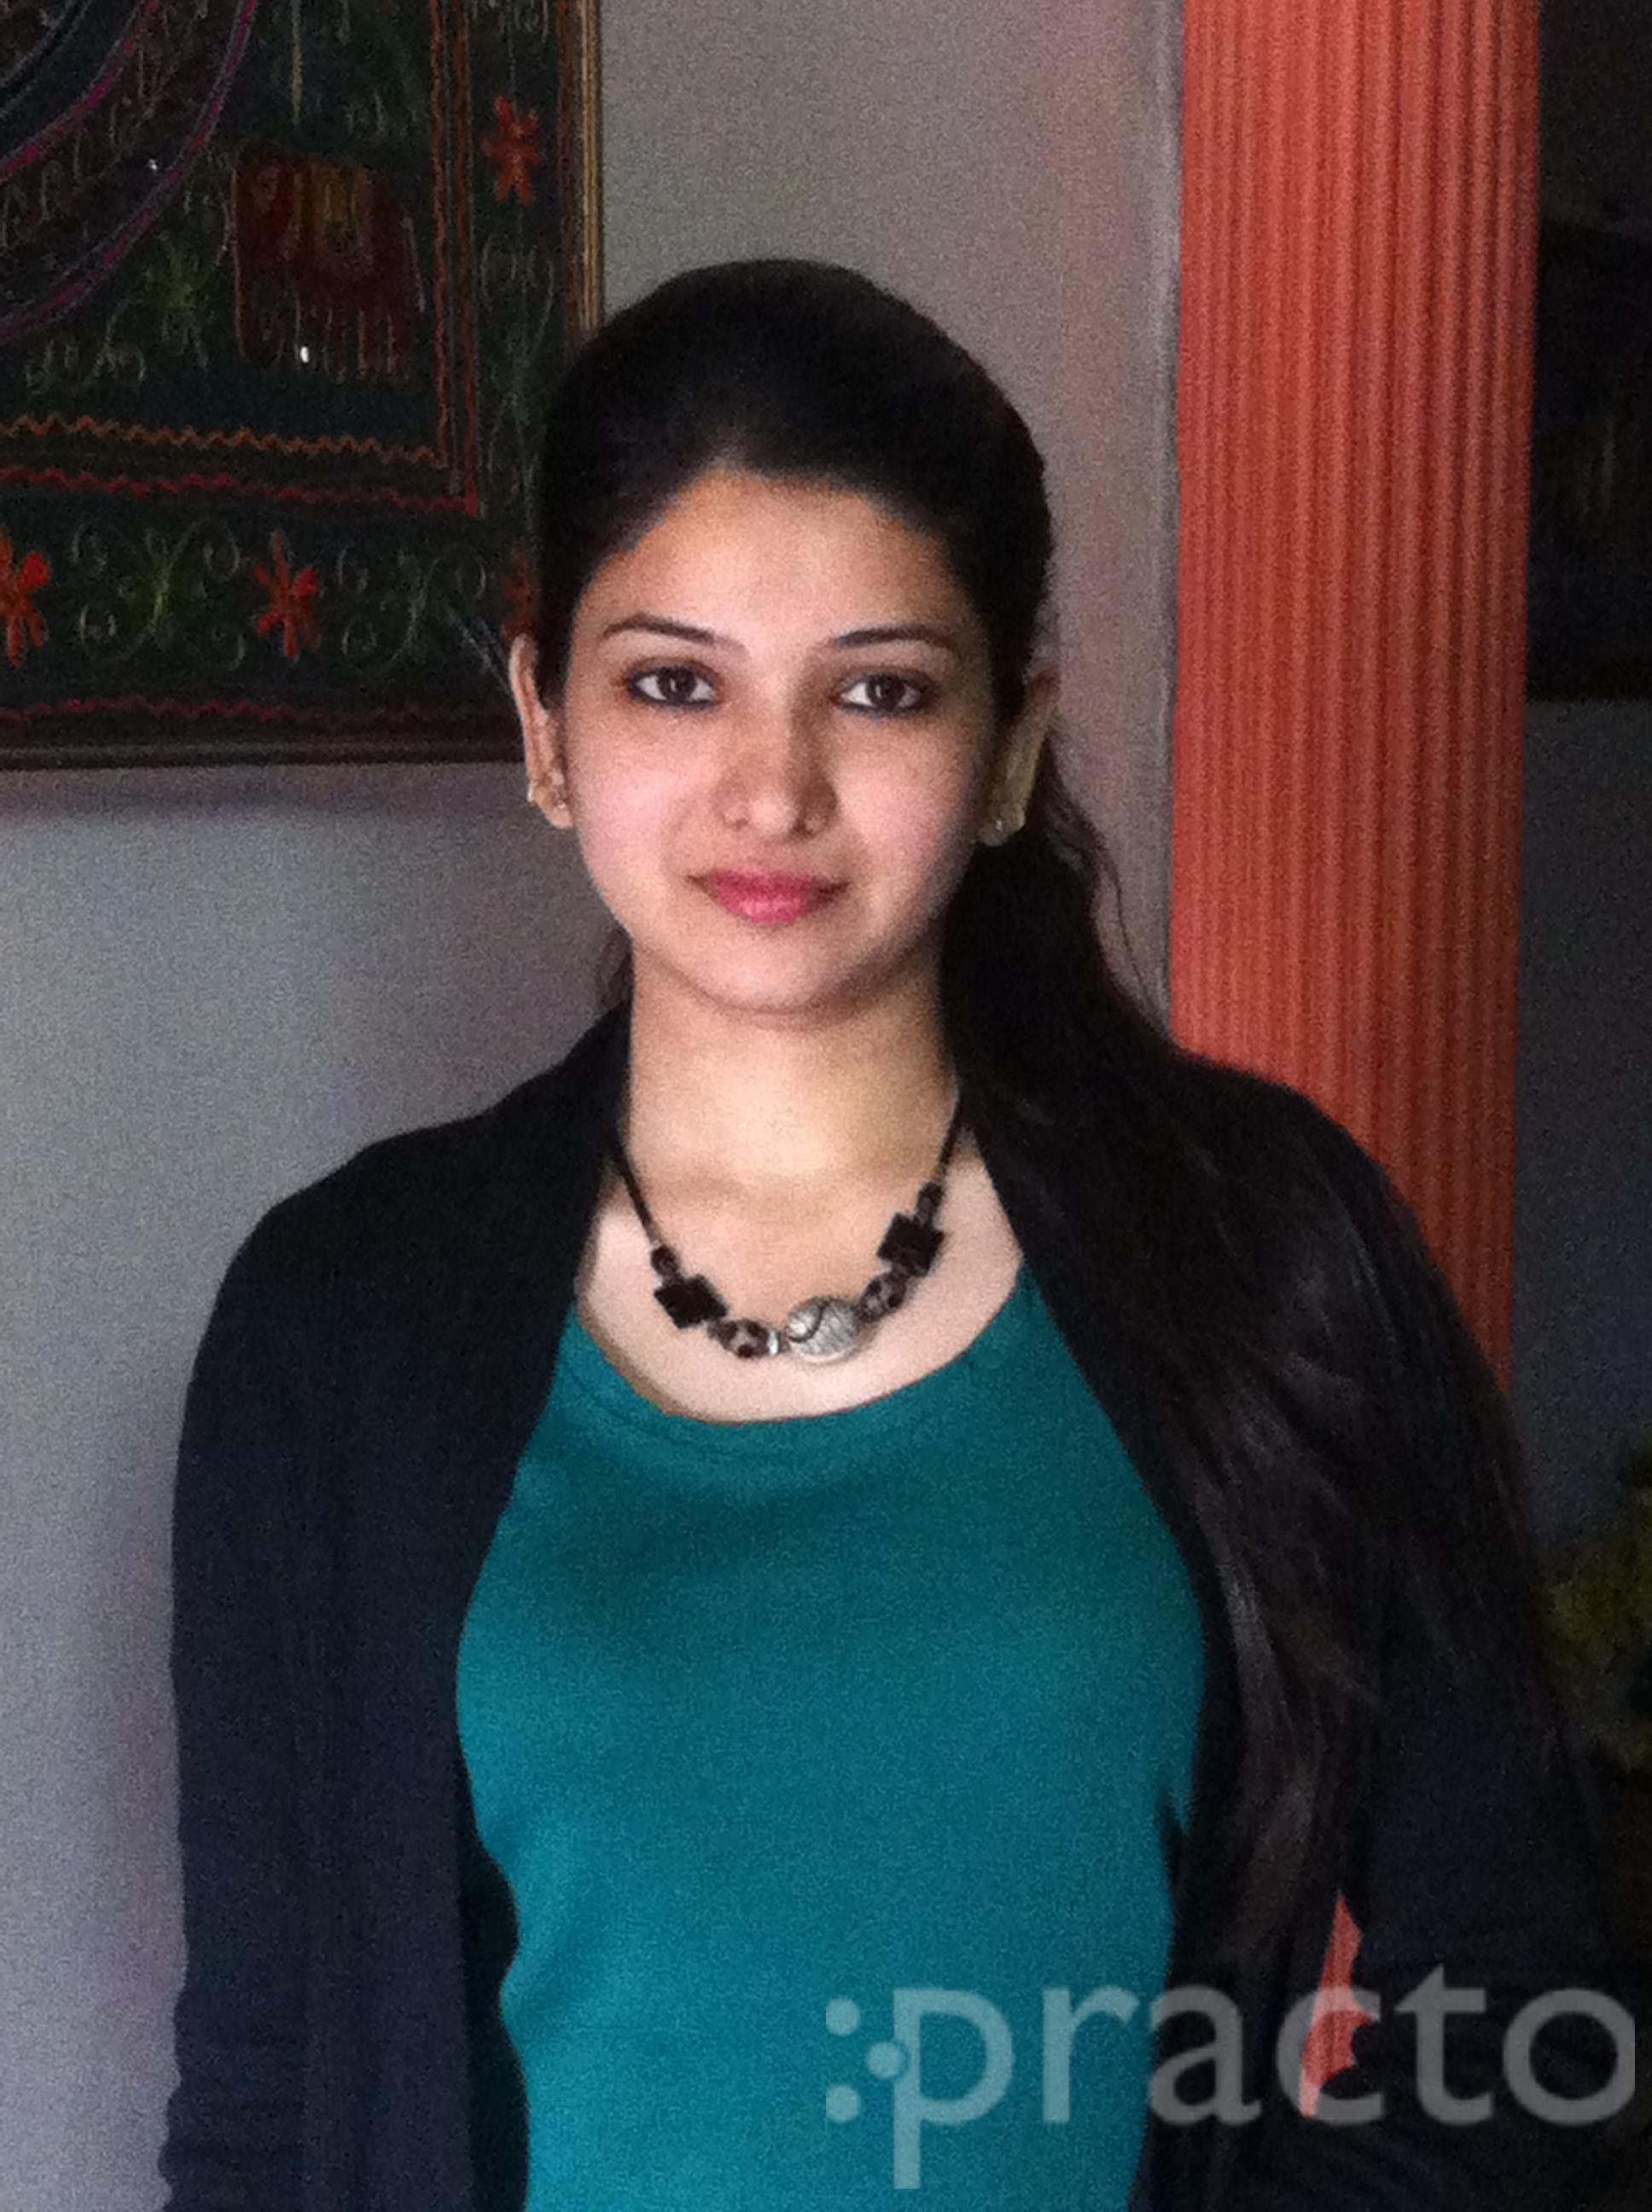 Dr. Neha Aggarwal - Dietitian/Nutritionist